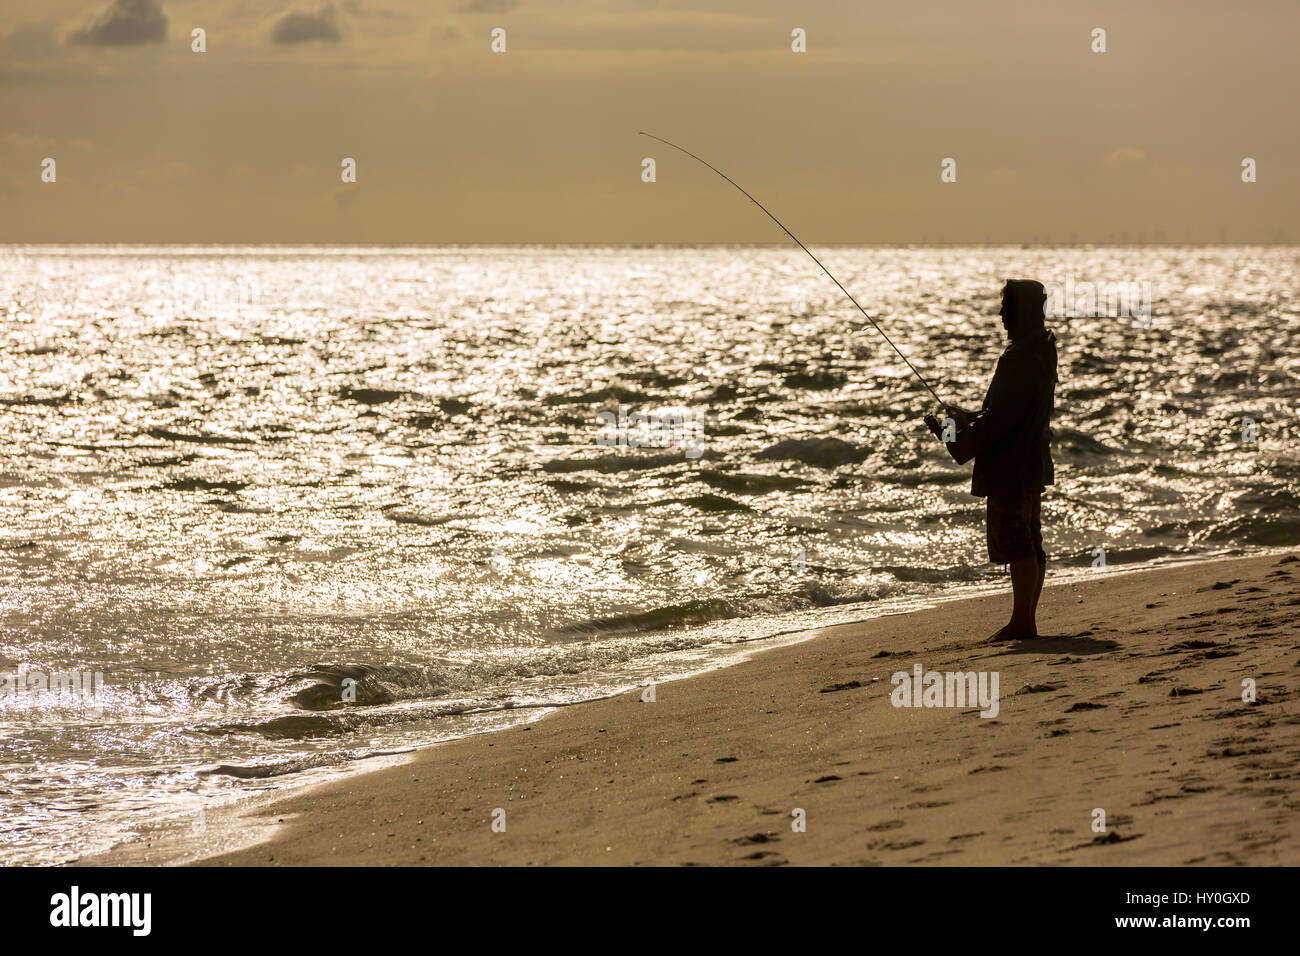 Angler on the beach, Sylt, Germany - Stock Image